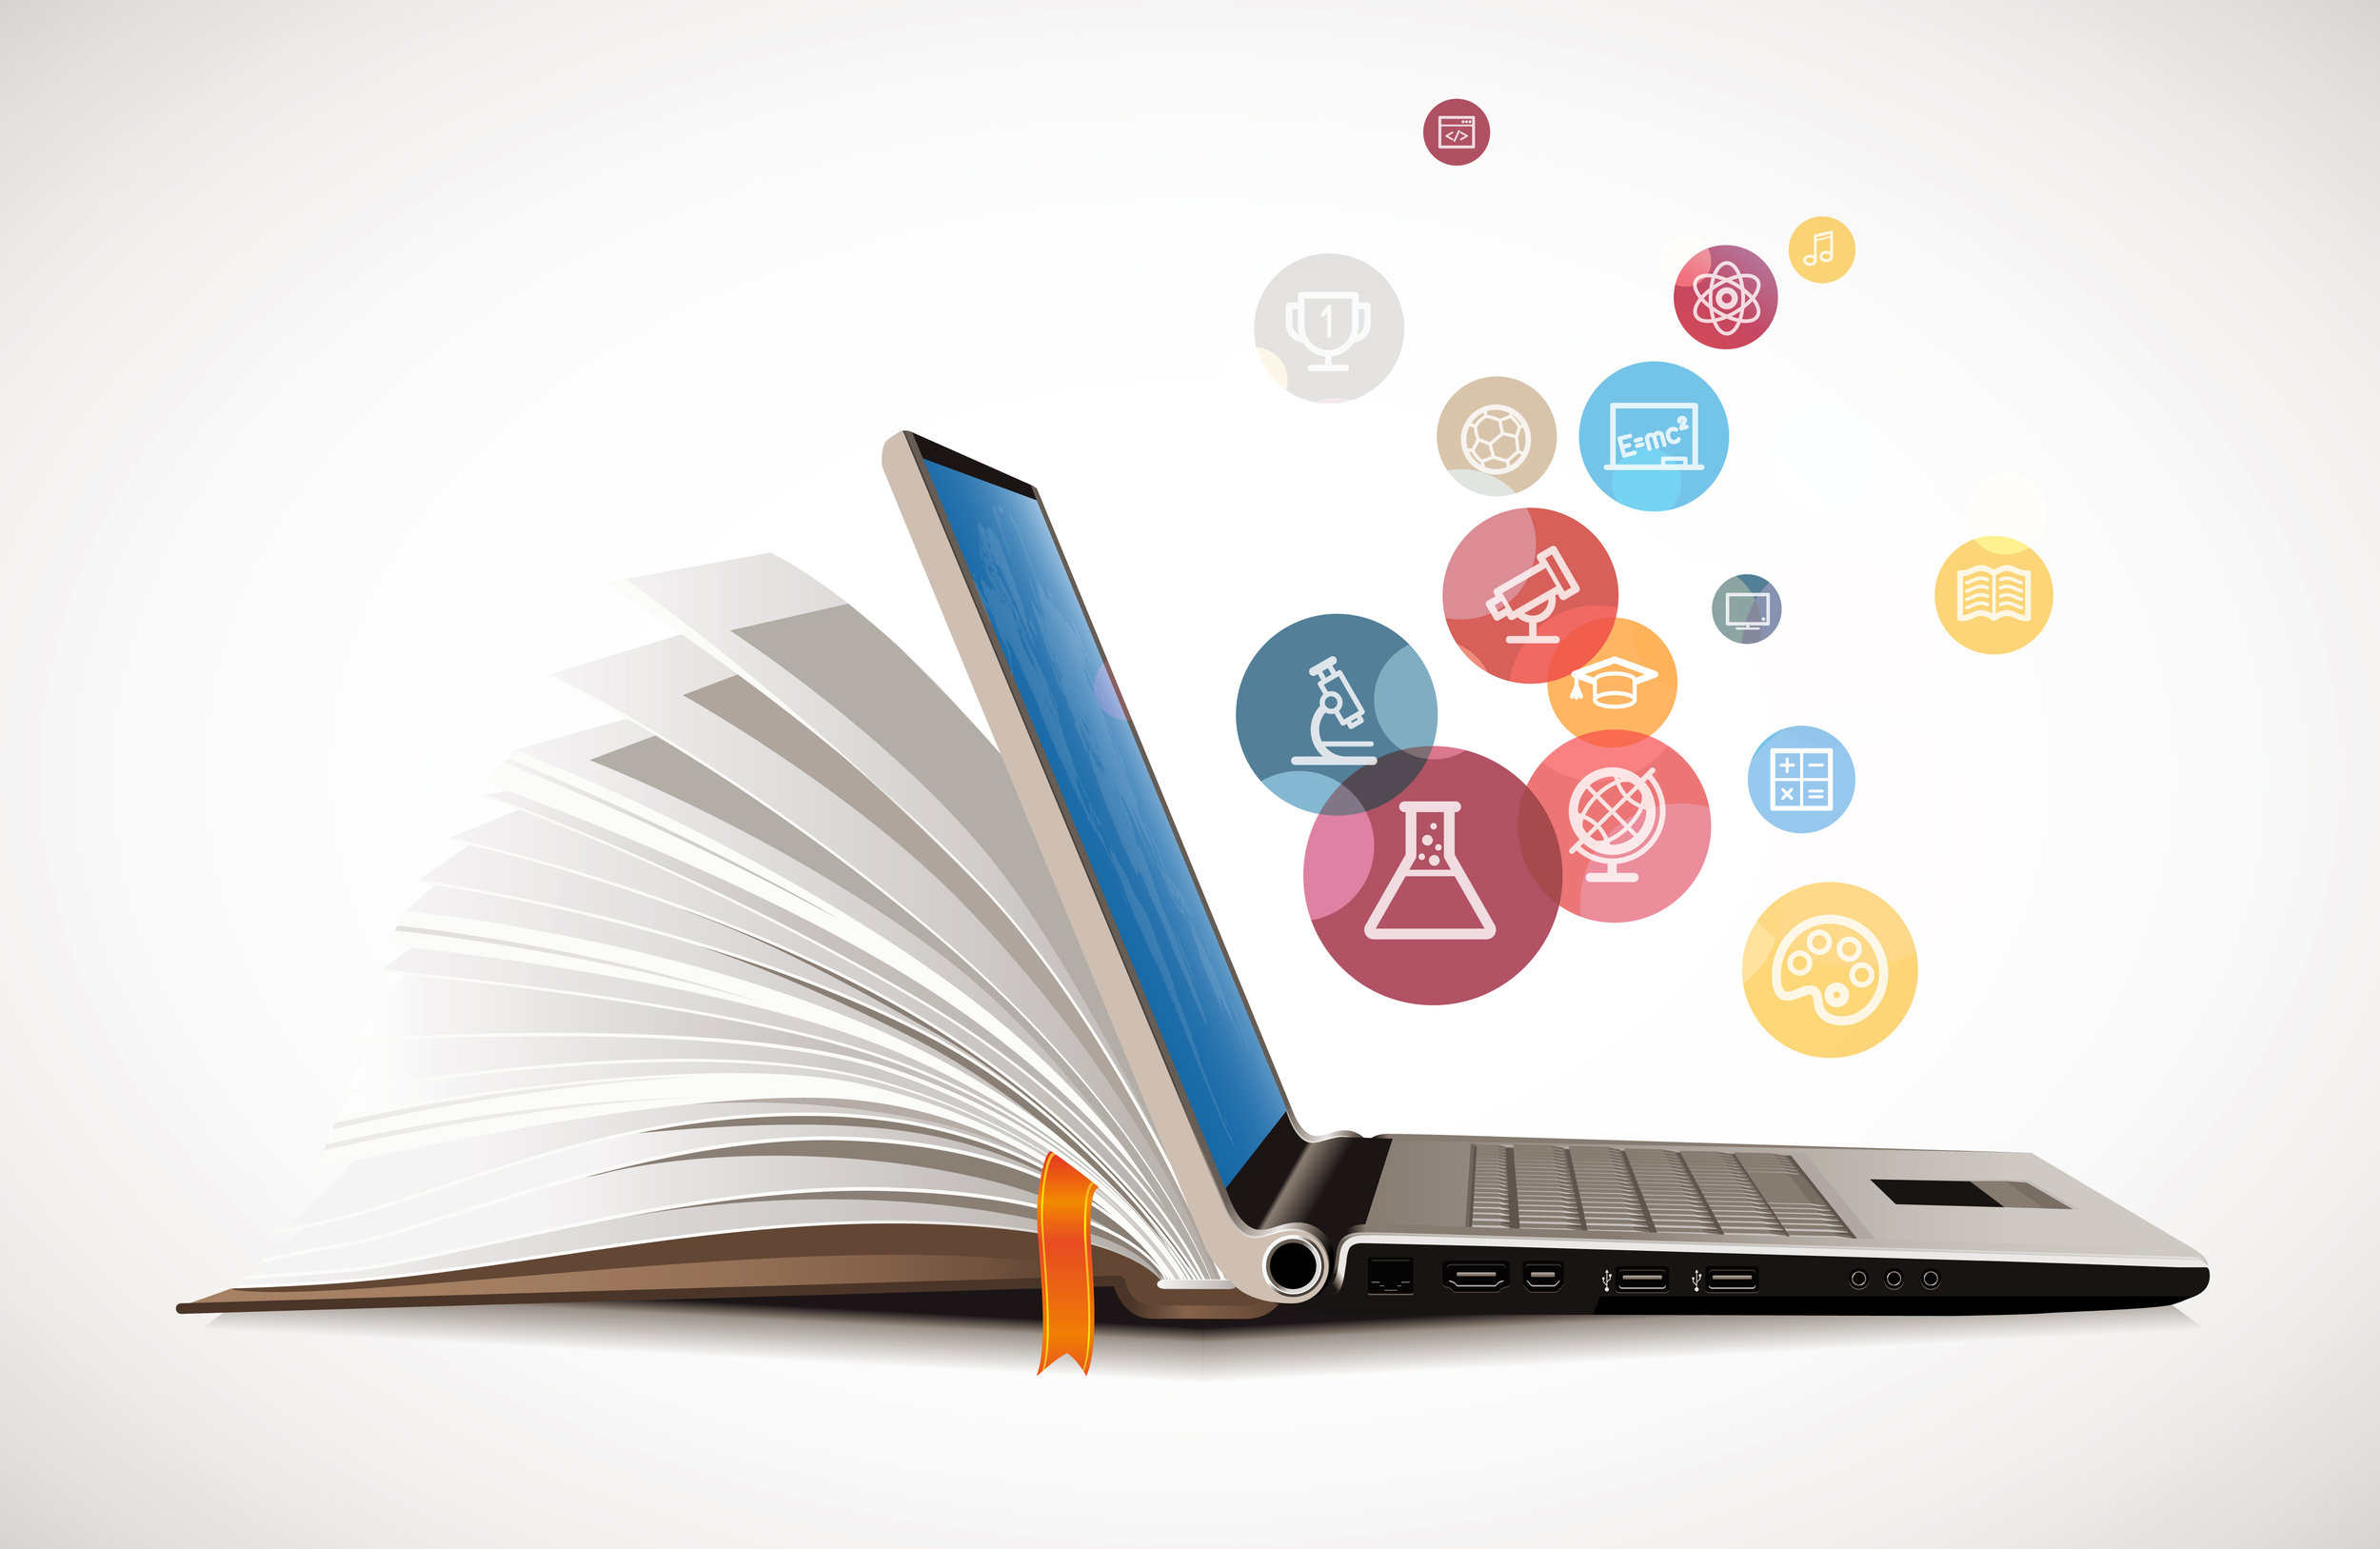 Richdesk education: built for supporting IT in education